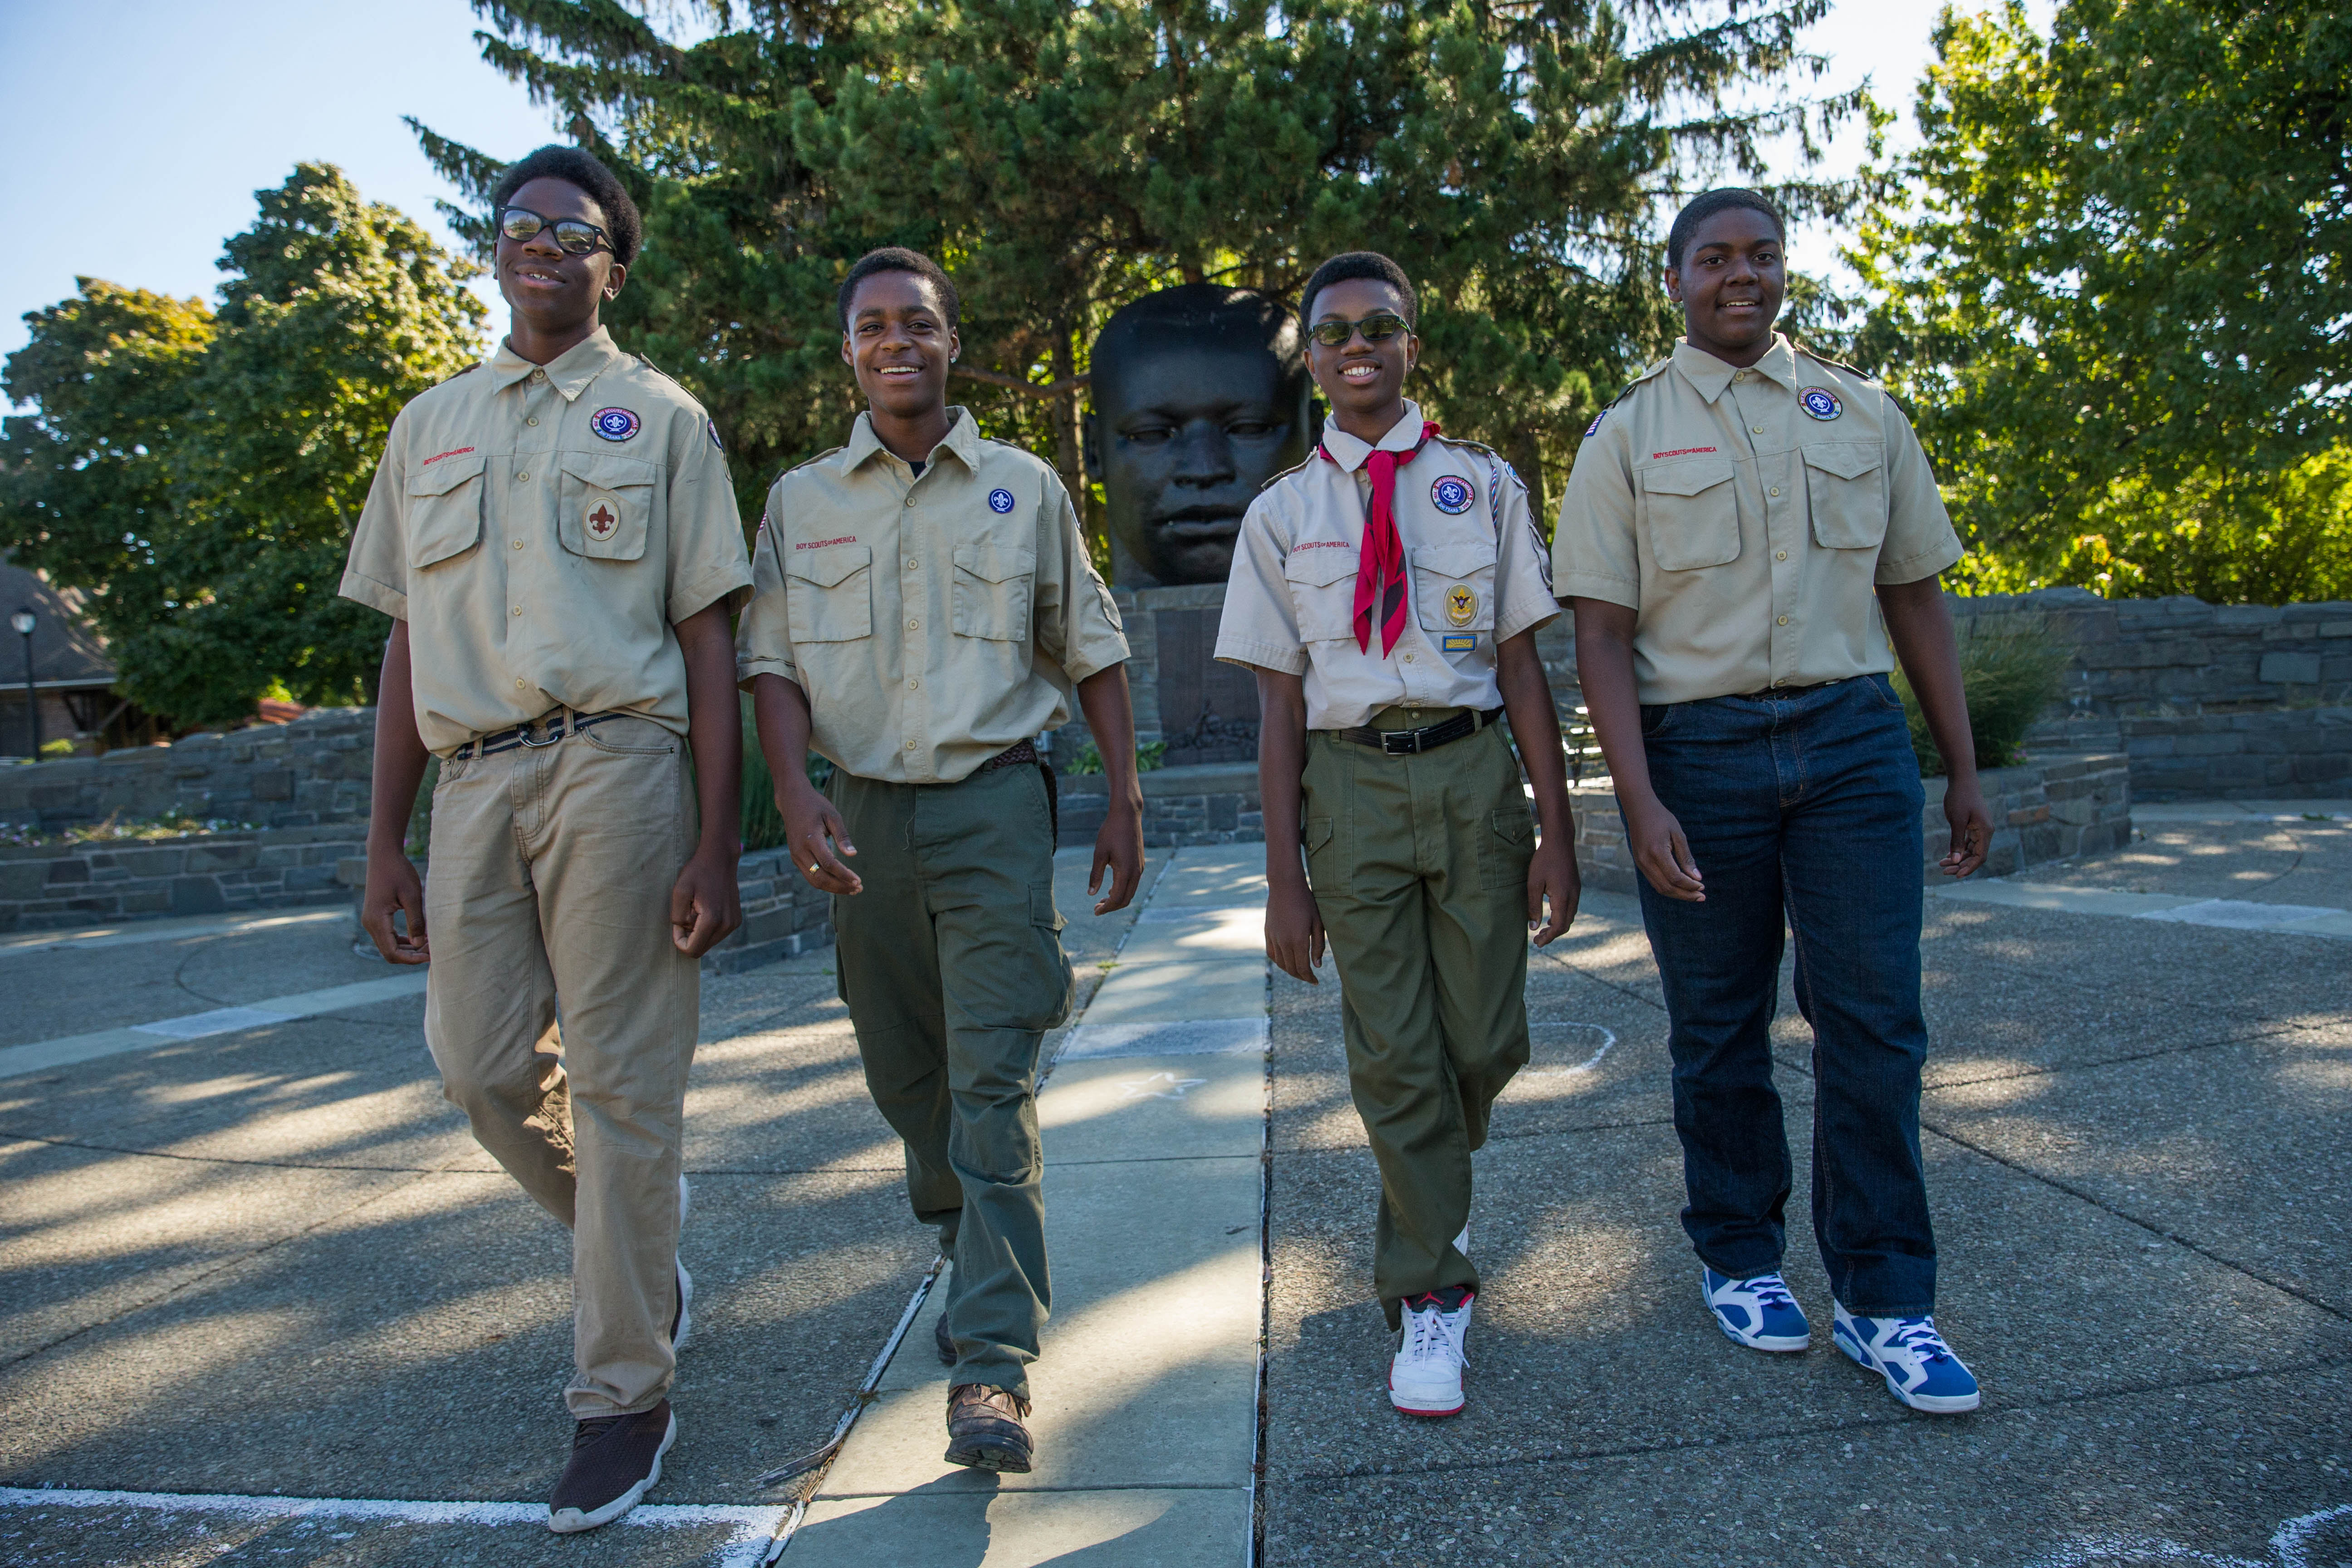 Boy Scouts, from left, Emmanuel Trueheart, 15, Ramon Winfrey, 17, Dekari Jackson, 13, and Jeffrey McMillan, 14, hiked from Niagara Falls to Martin Luther King Park in Buffalo to raise awareness about diabetes while working on a merit badge en route to become Eagle Scouts, on Monday, Oct. 10, 2016. (Derek Gee/Buffalo News)